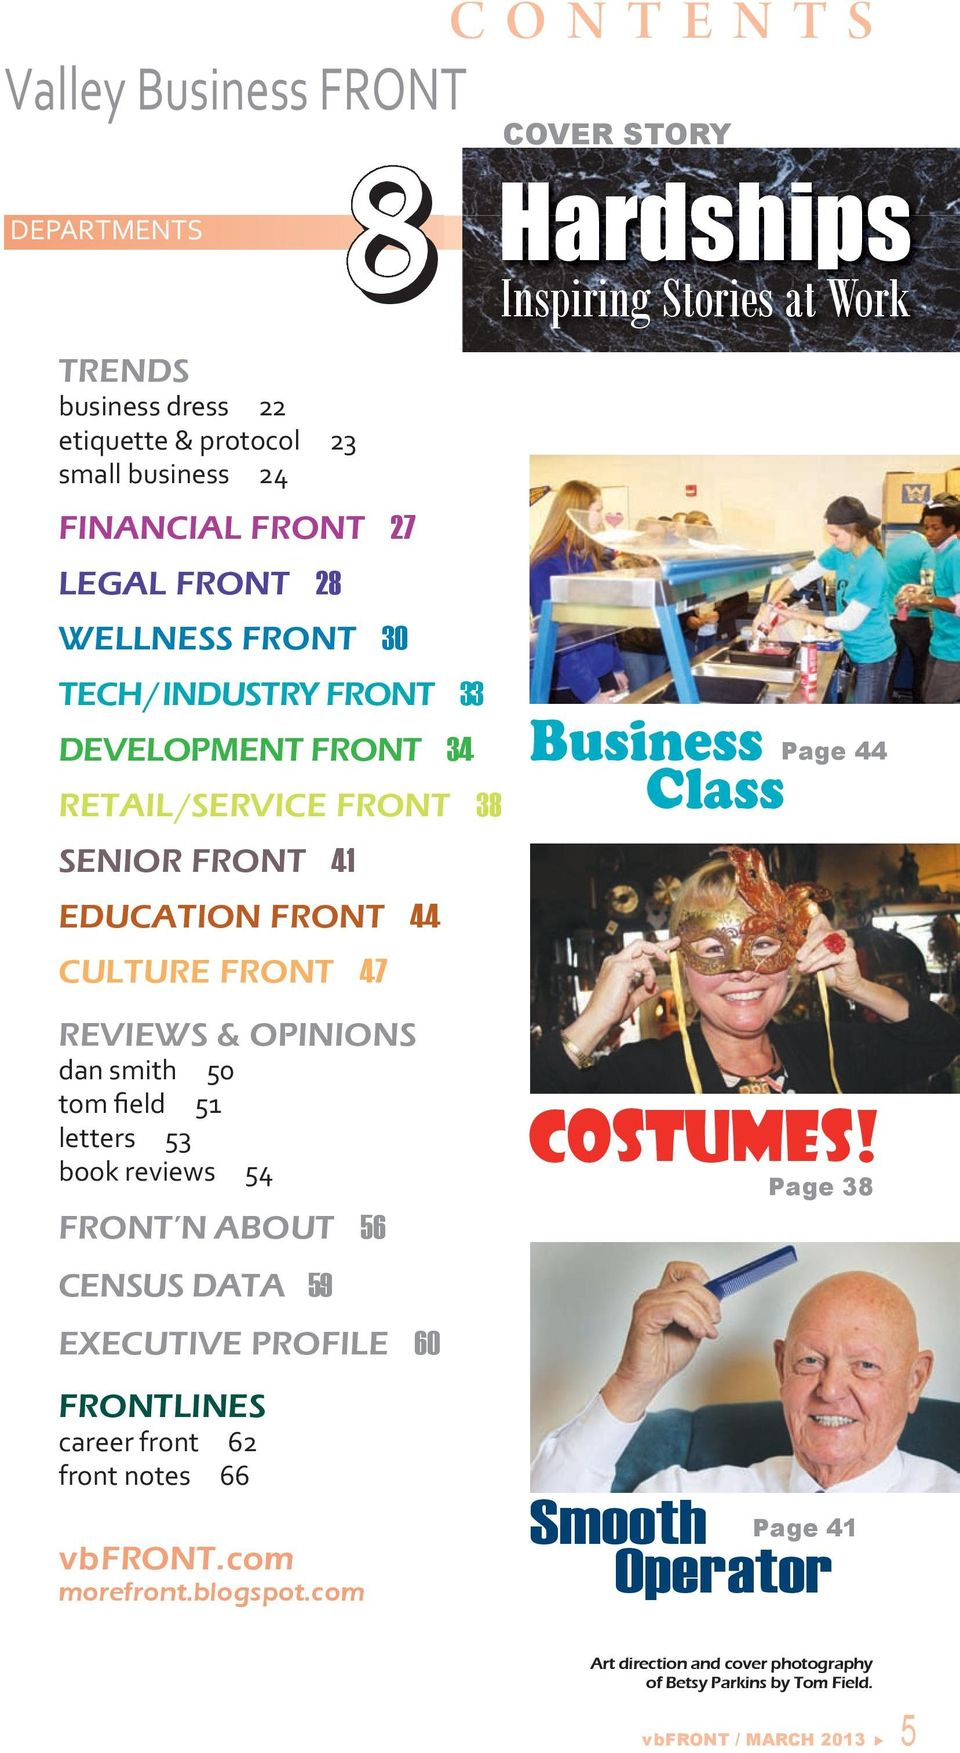 53 book reviews 54 FRONT N ABOUT 56 CENSUS DATA 59 8 EXECUTIVE PROFILE 60 COVER STORY Hardships Inspiring Stories at Work Business Class Page 44 Costumes!